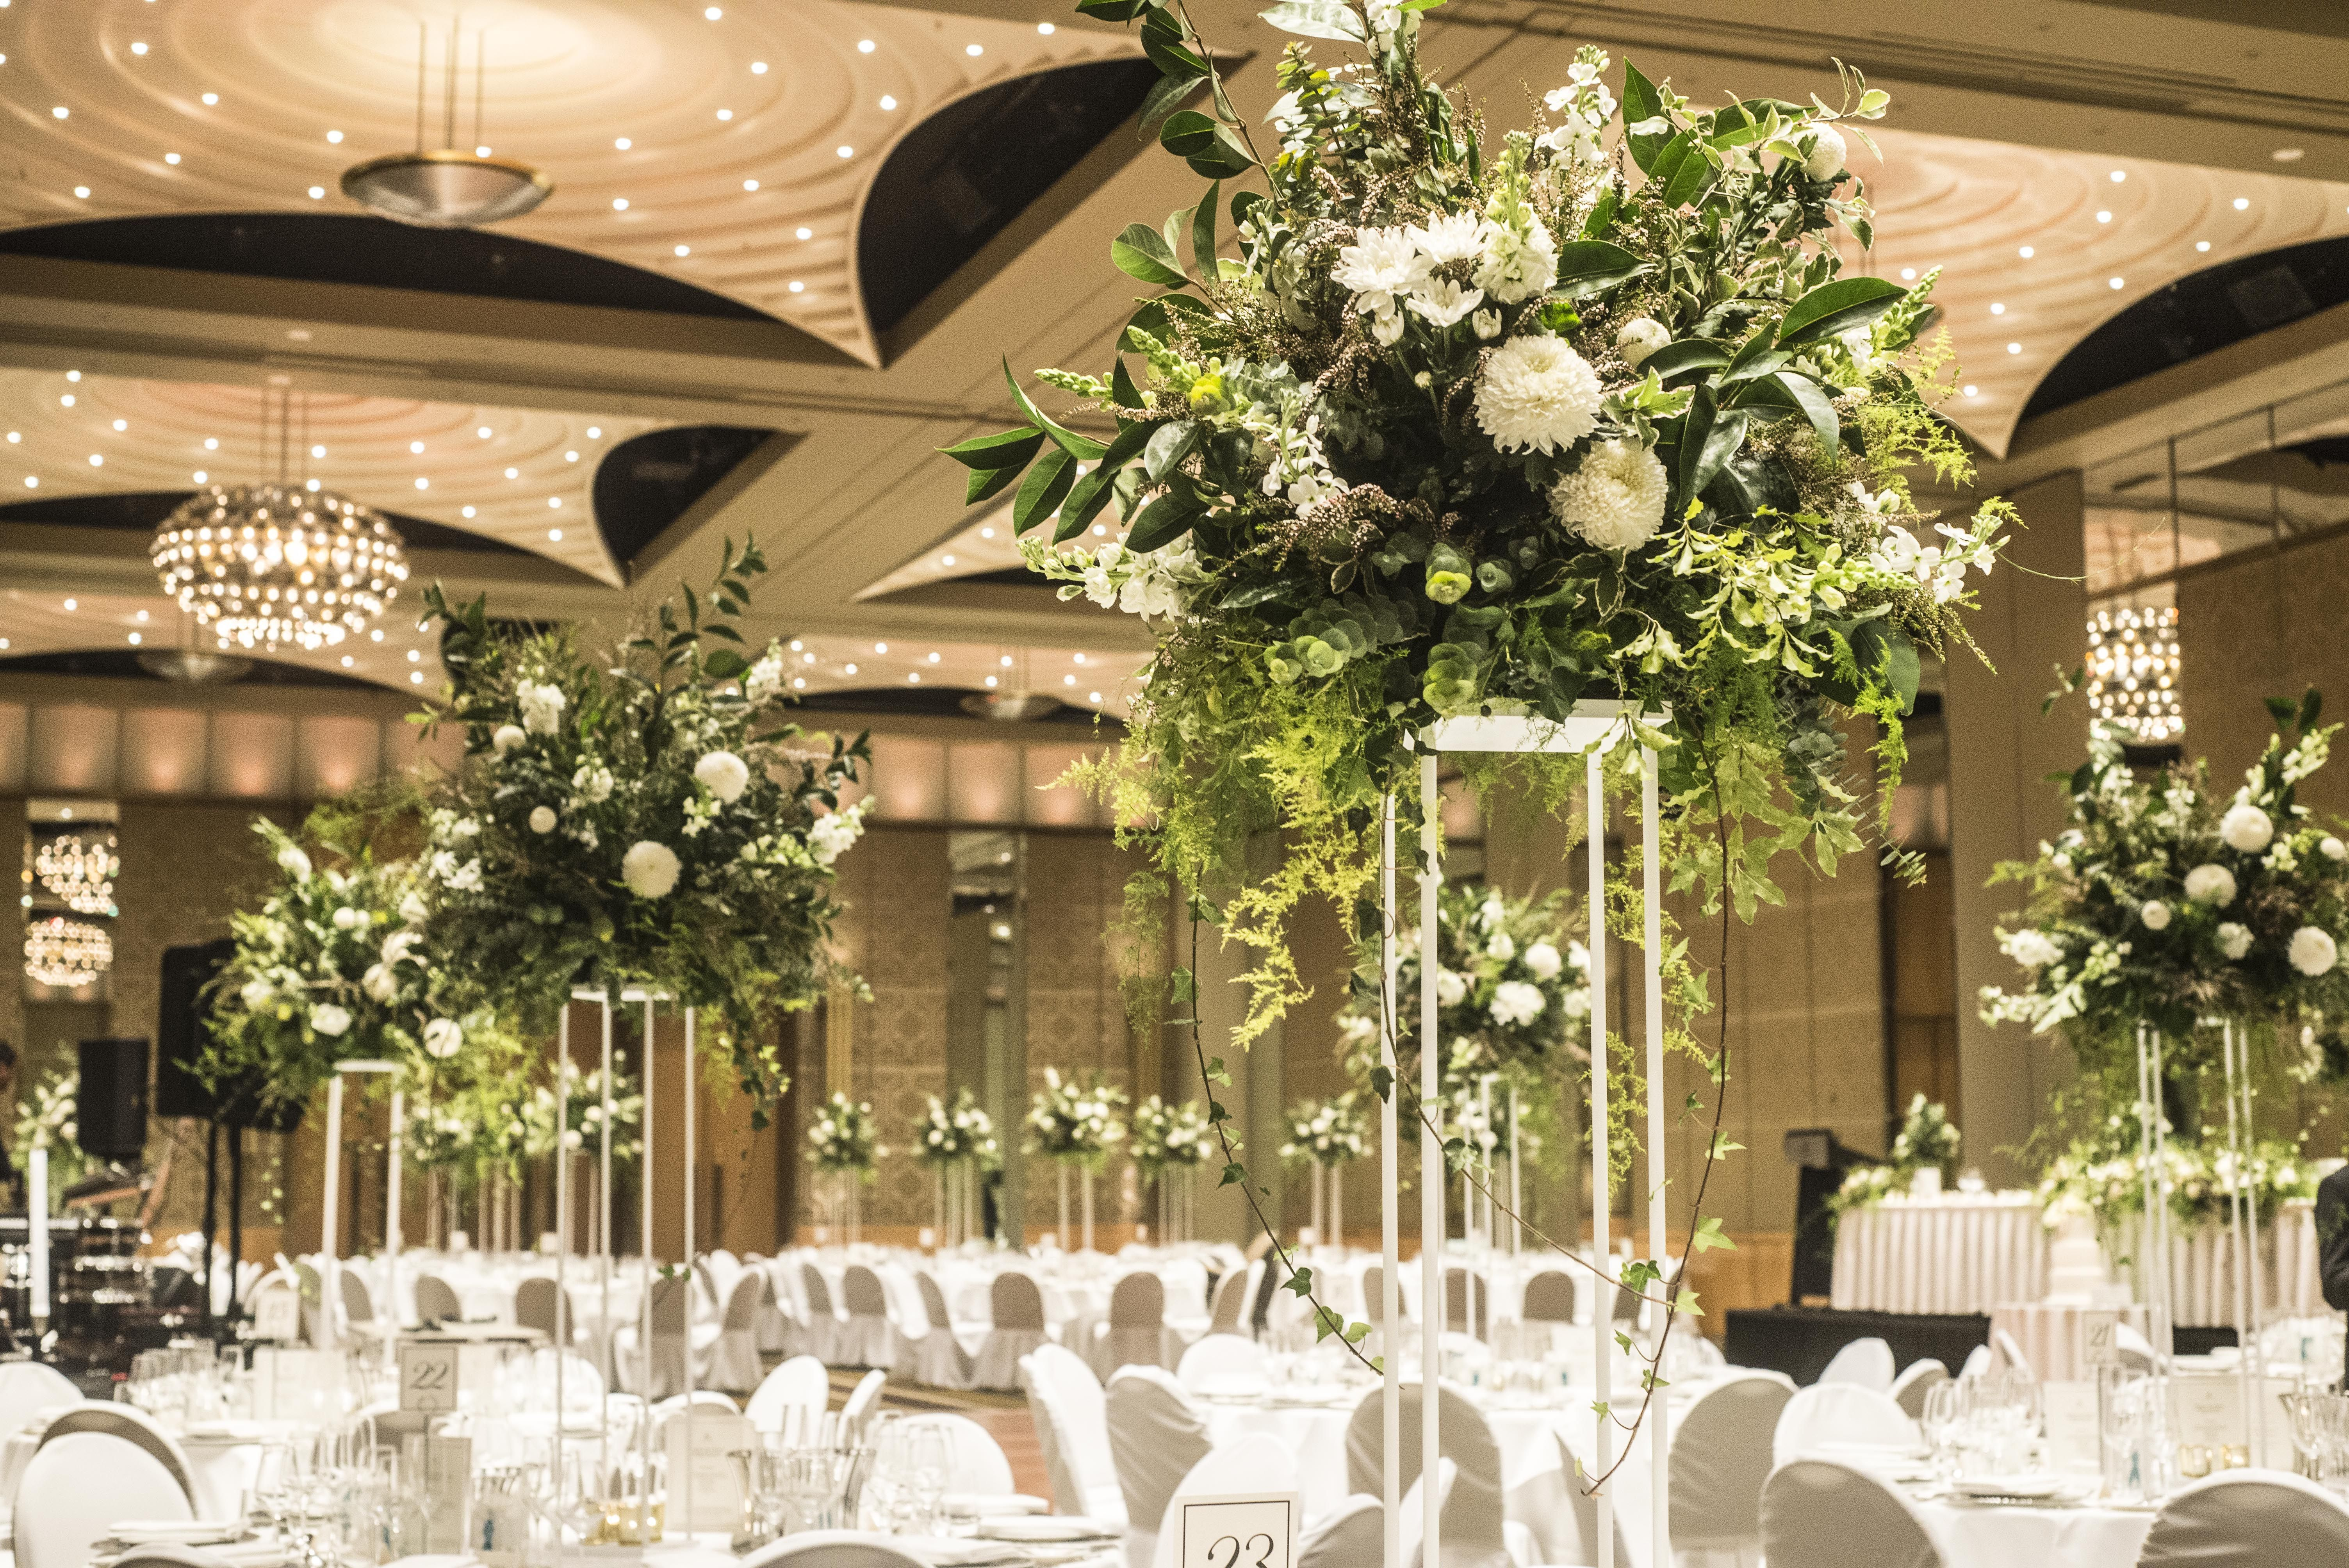 White And Green Floral Arrangements On Canopy Stands Wedding Reception Arrangements On Table Stands Fl Reception Arrangement Wedding Florist Wedding Flowers